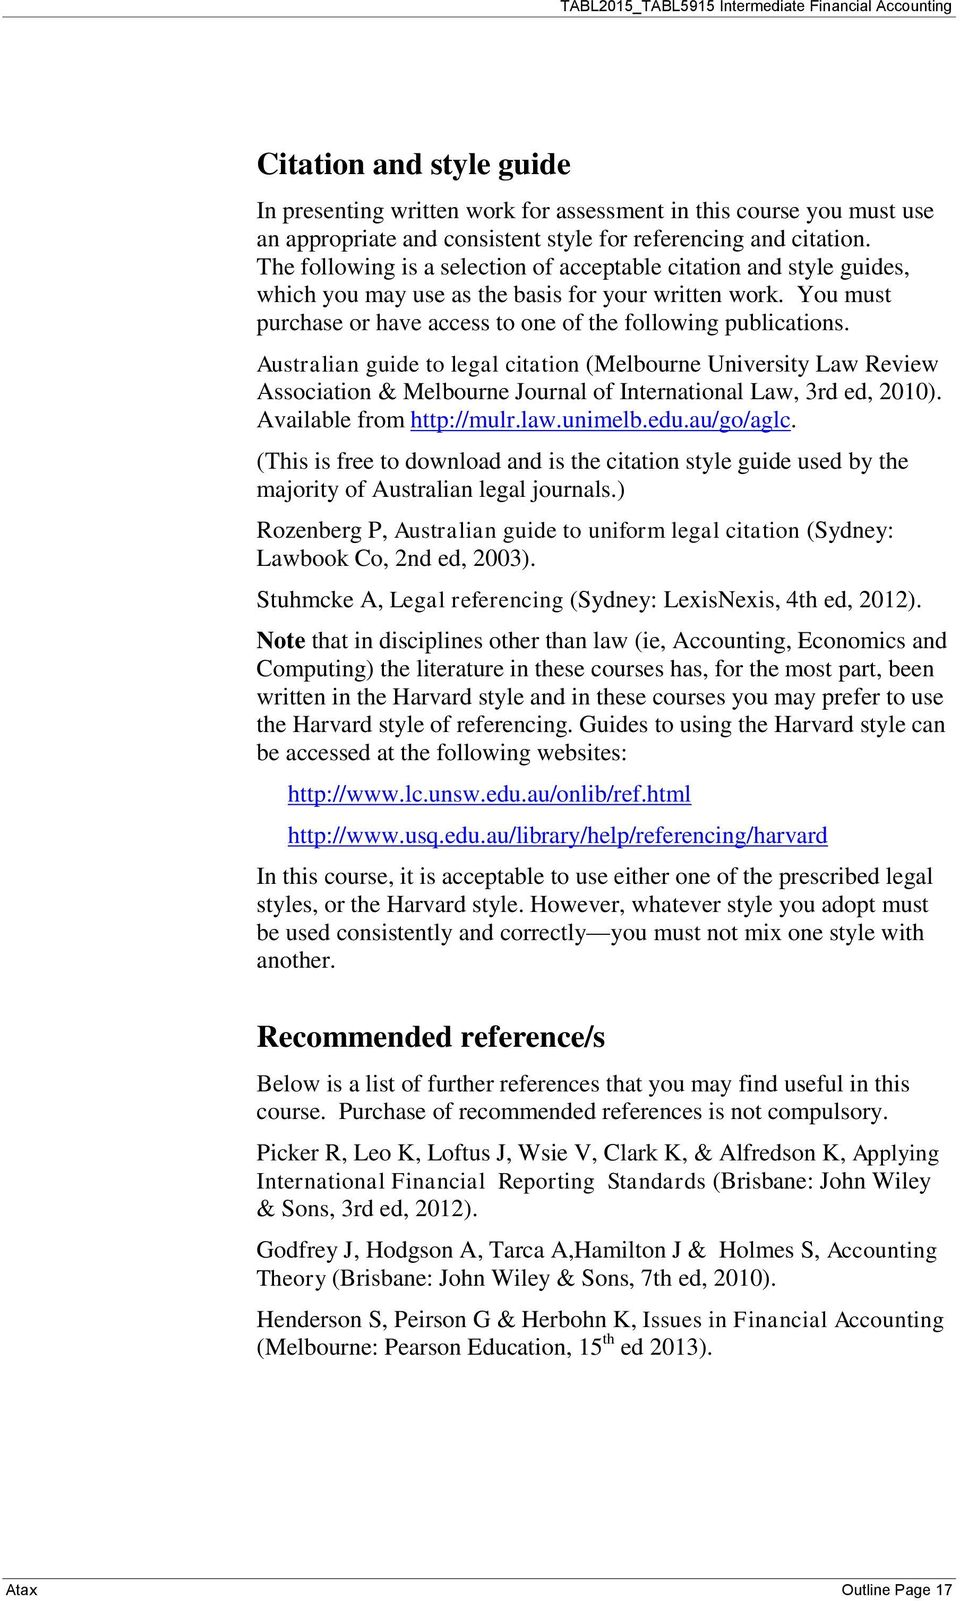 Australian guide to legal citation (Melbourne University Law Review Association & Melbourne Journal of International Law, 3rd ed, 2010). Available from http://mulr.law.unimelb.edu.au/go/aglc.